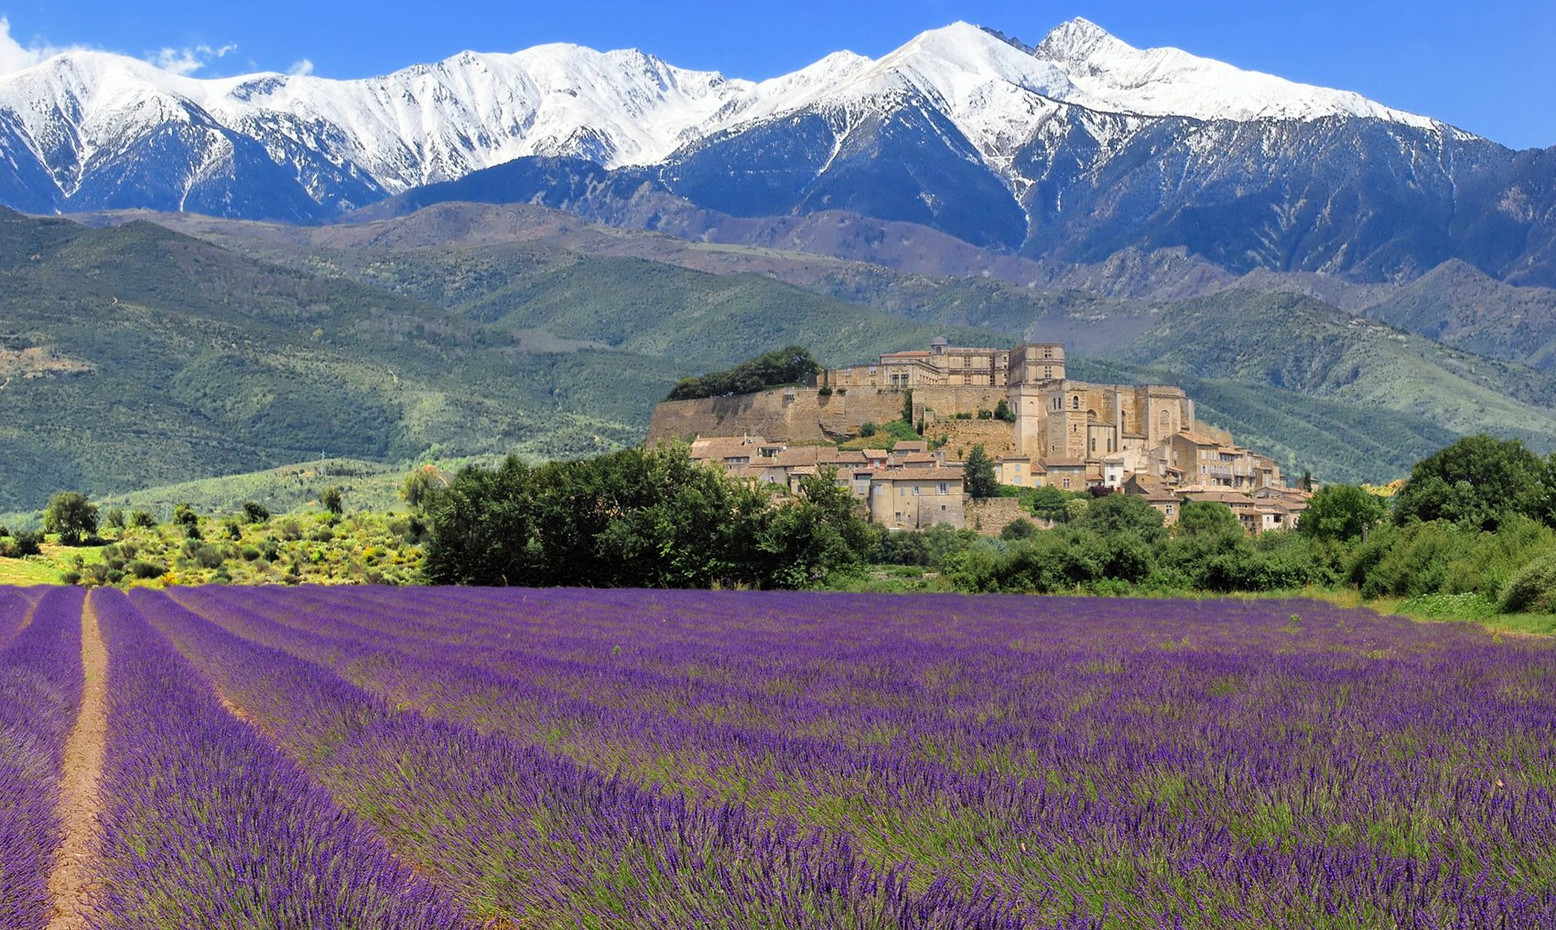 The superb lavender fields in Provence, with the last snows on the summits of the southern Alps.